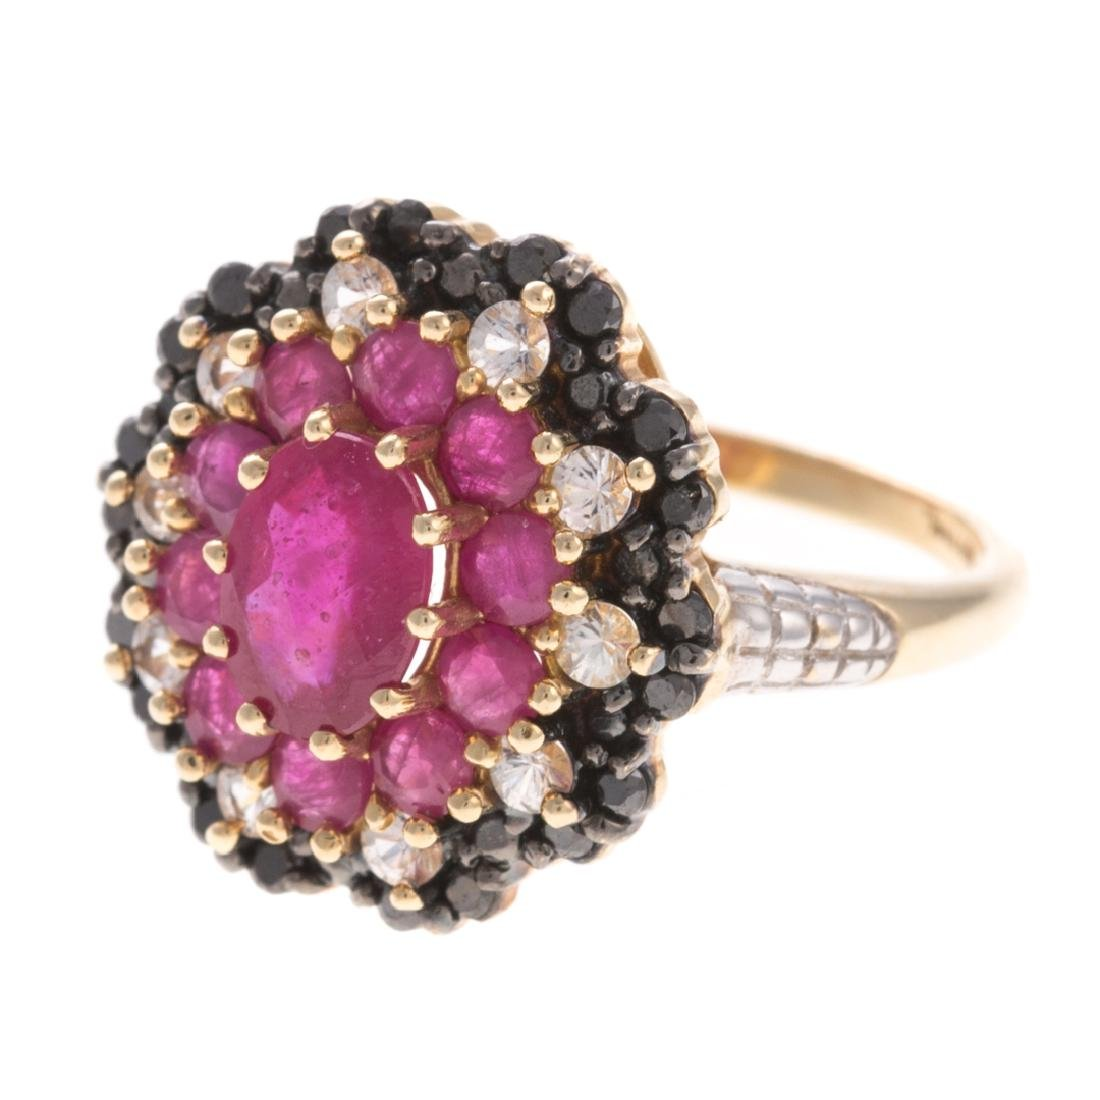 A Lady's Diamond & Ruby Ring in 10K - 4